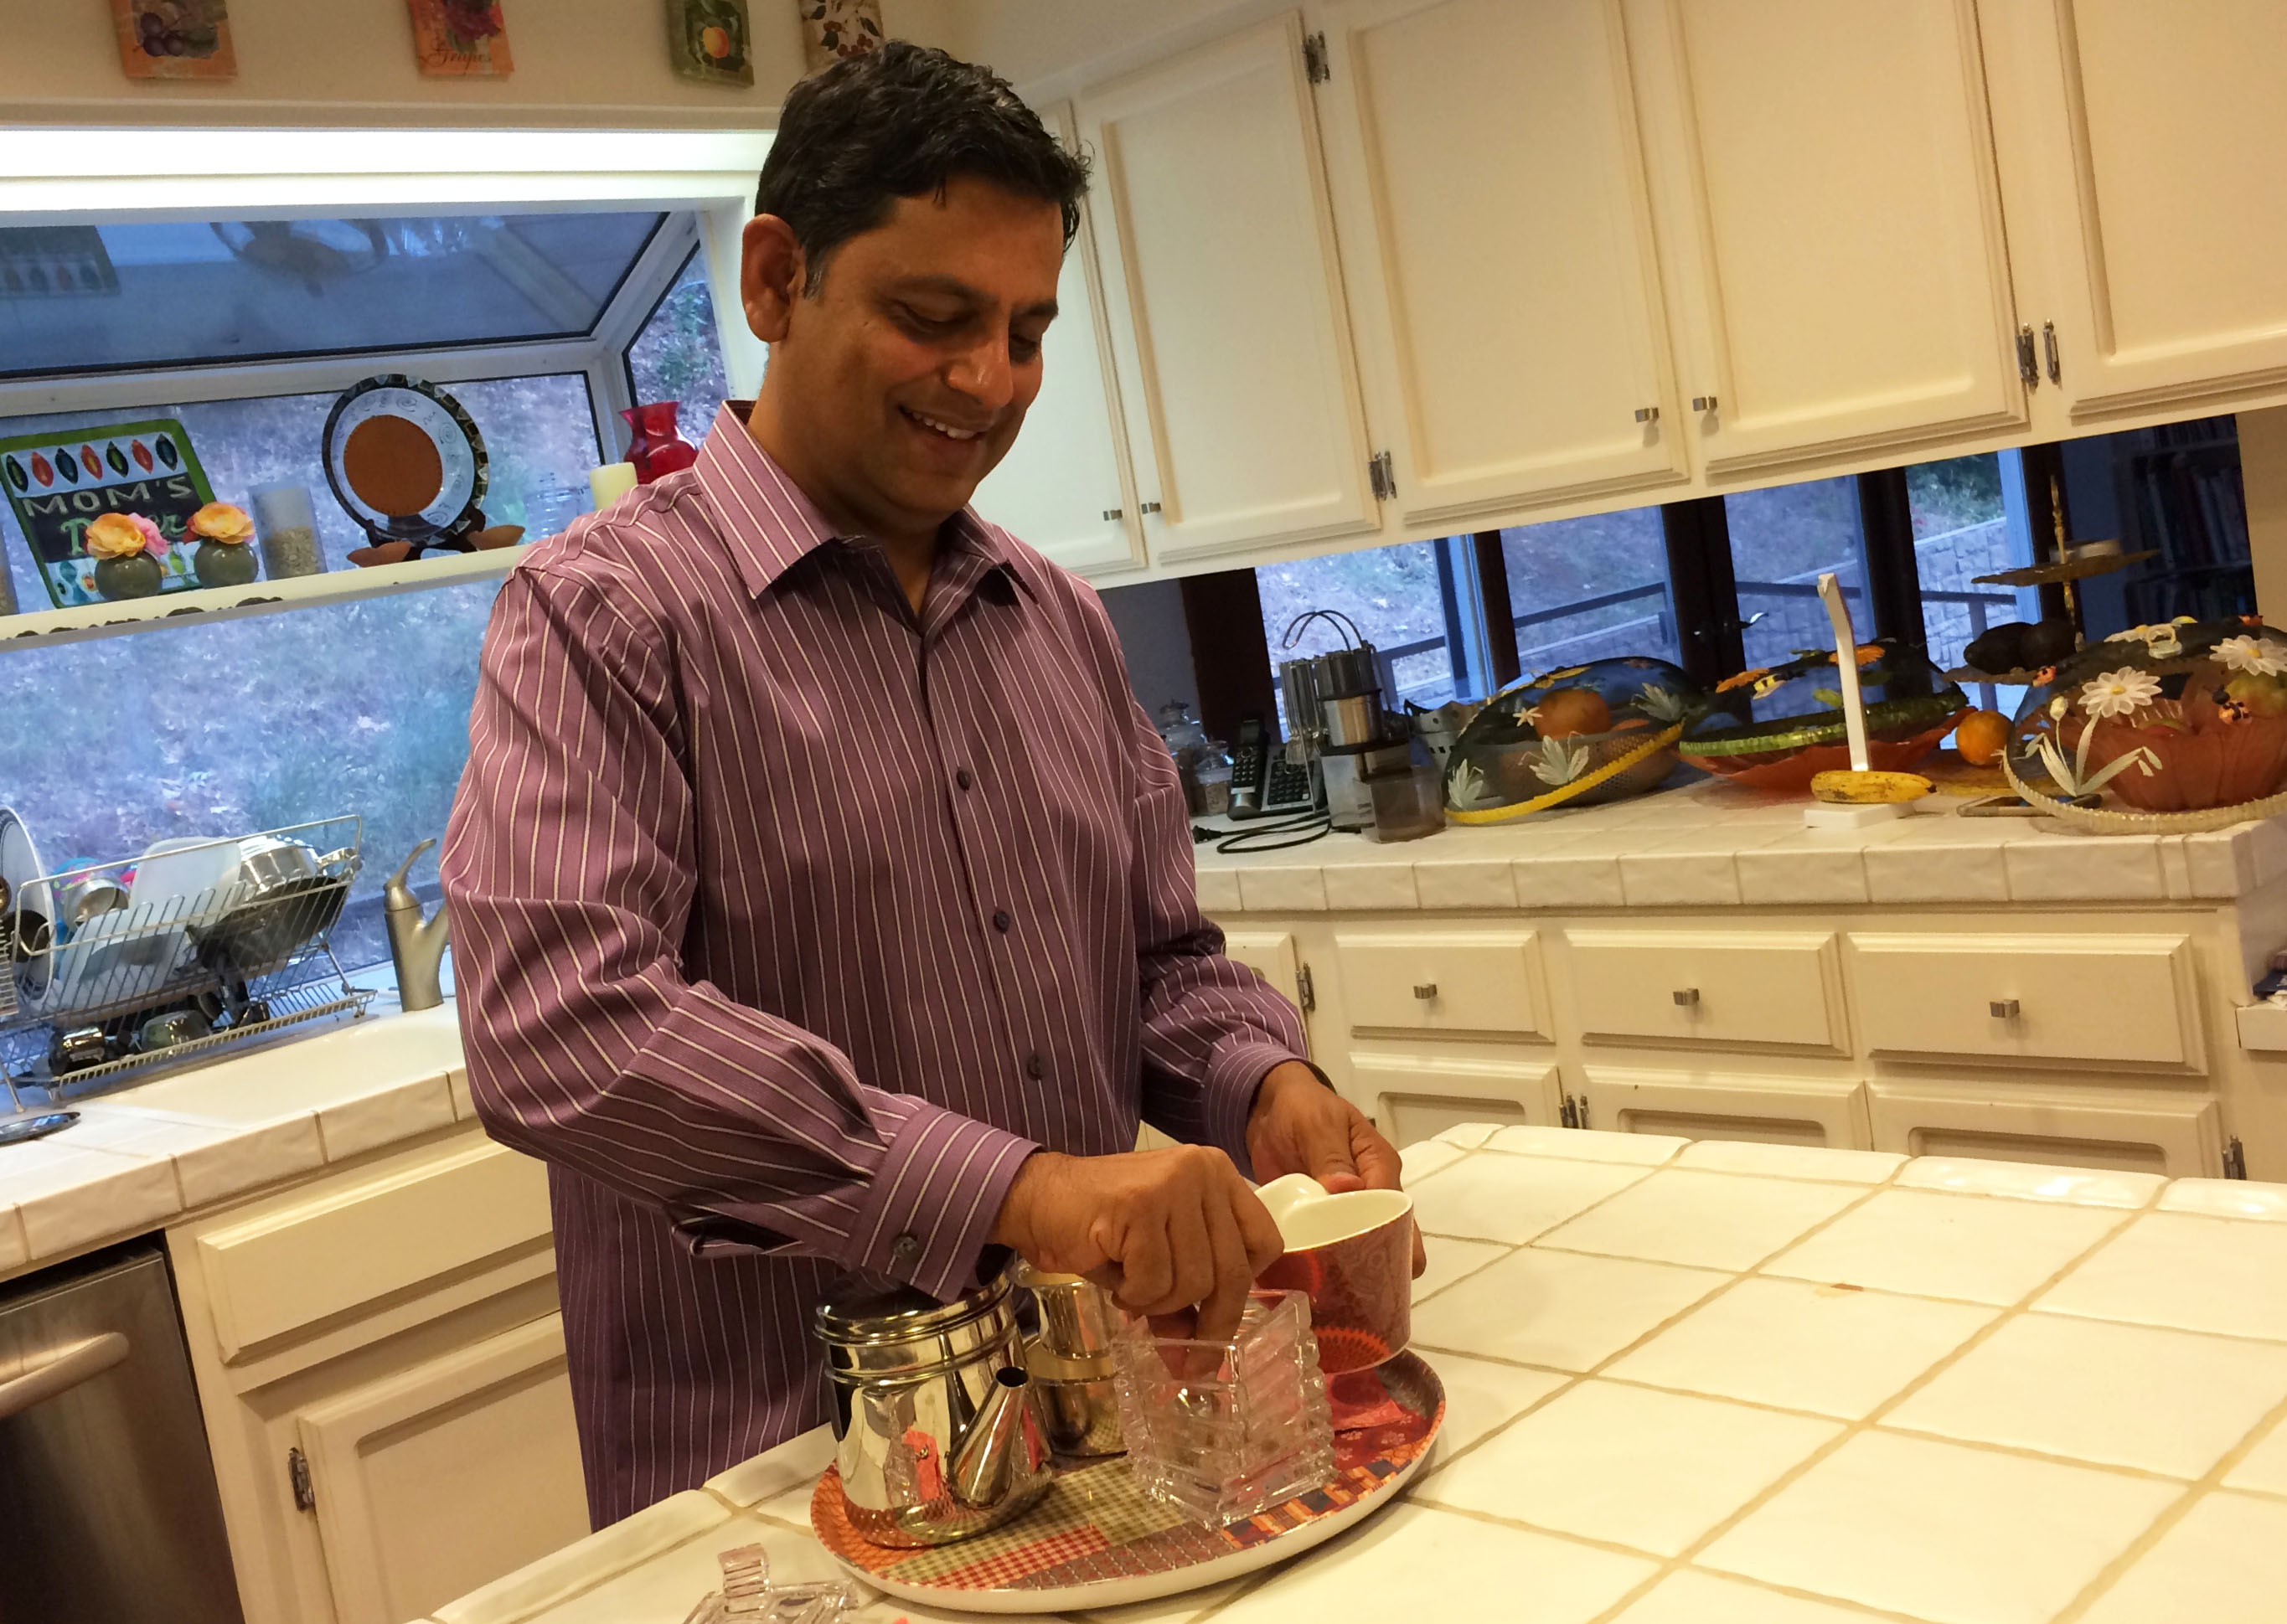 Silicon Valley startup founder Deepak Aatresh starts every day with a touch of his homeland -- south Indian filter coffee.